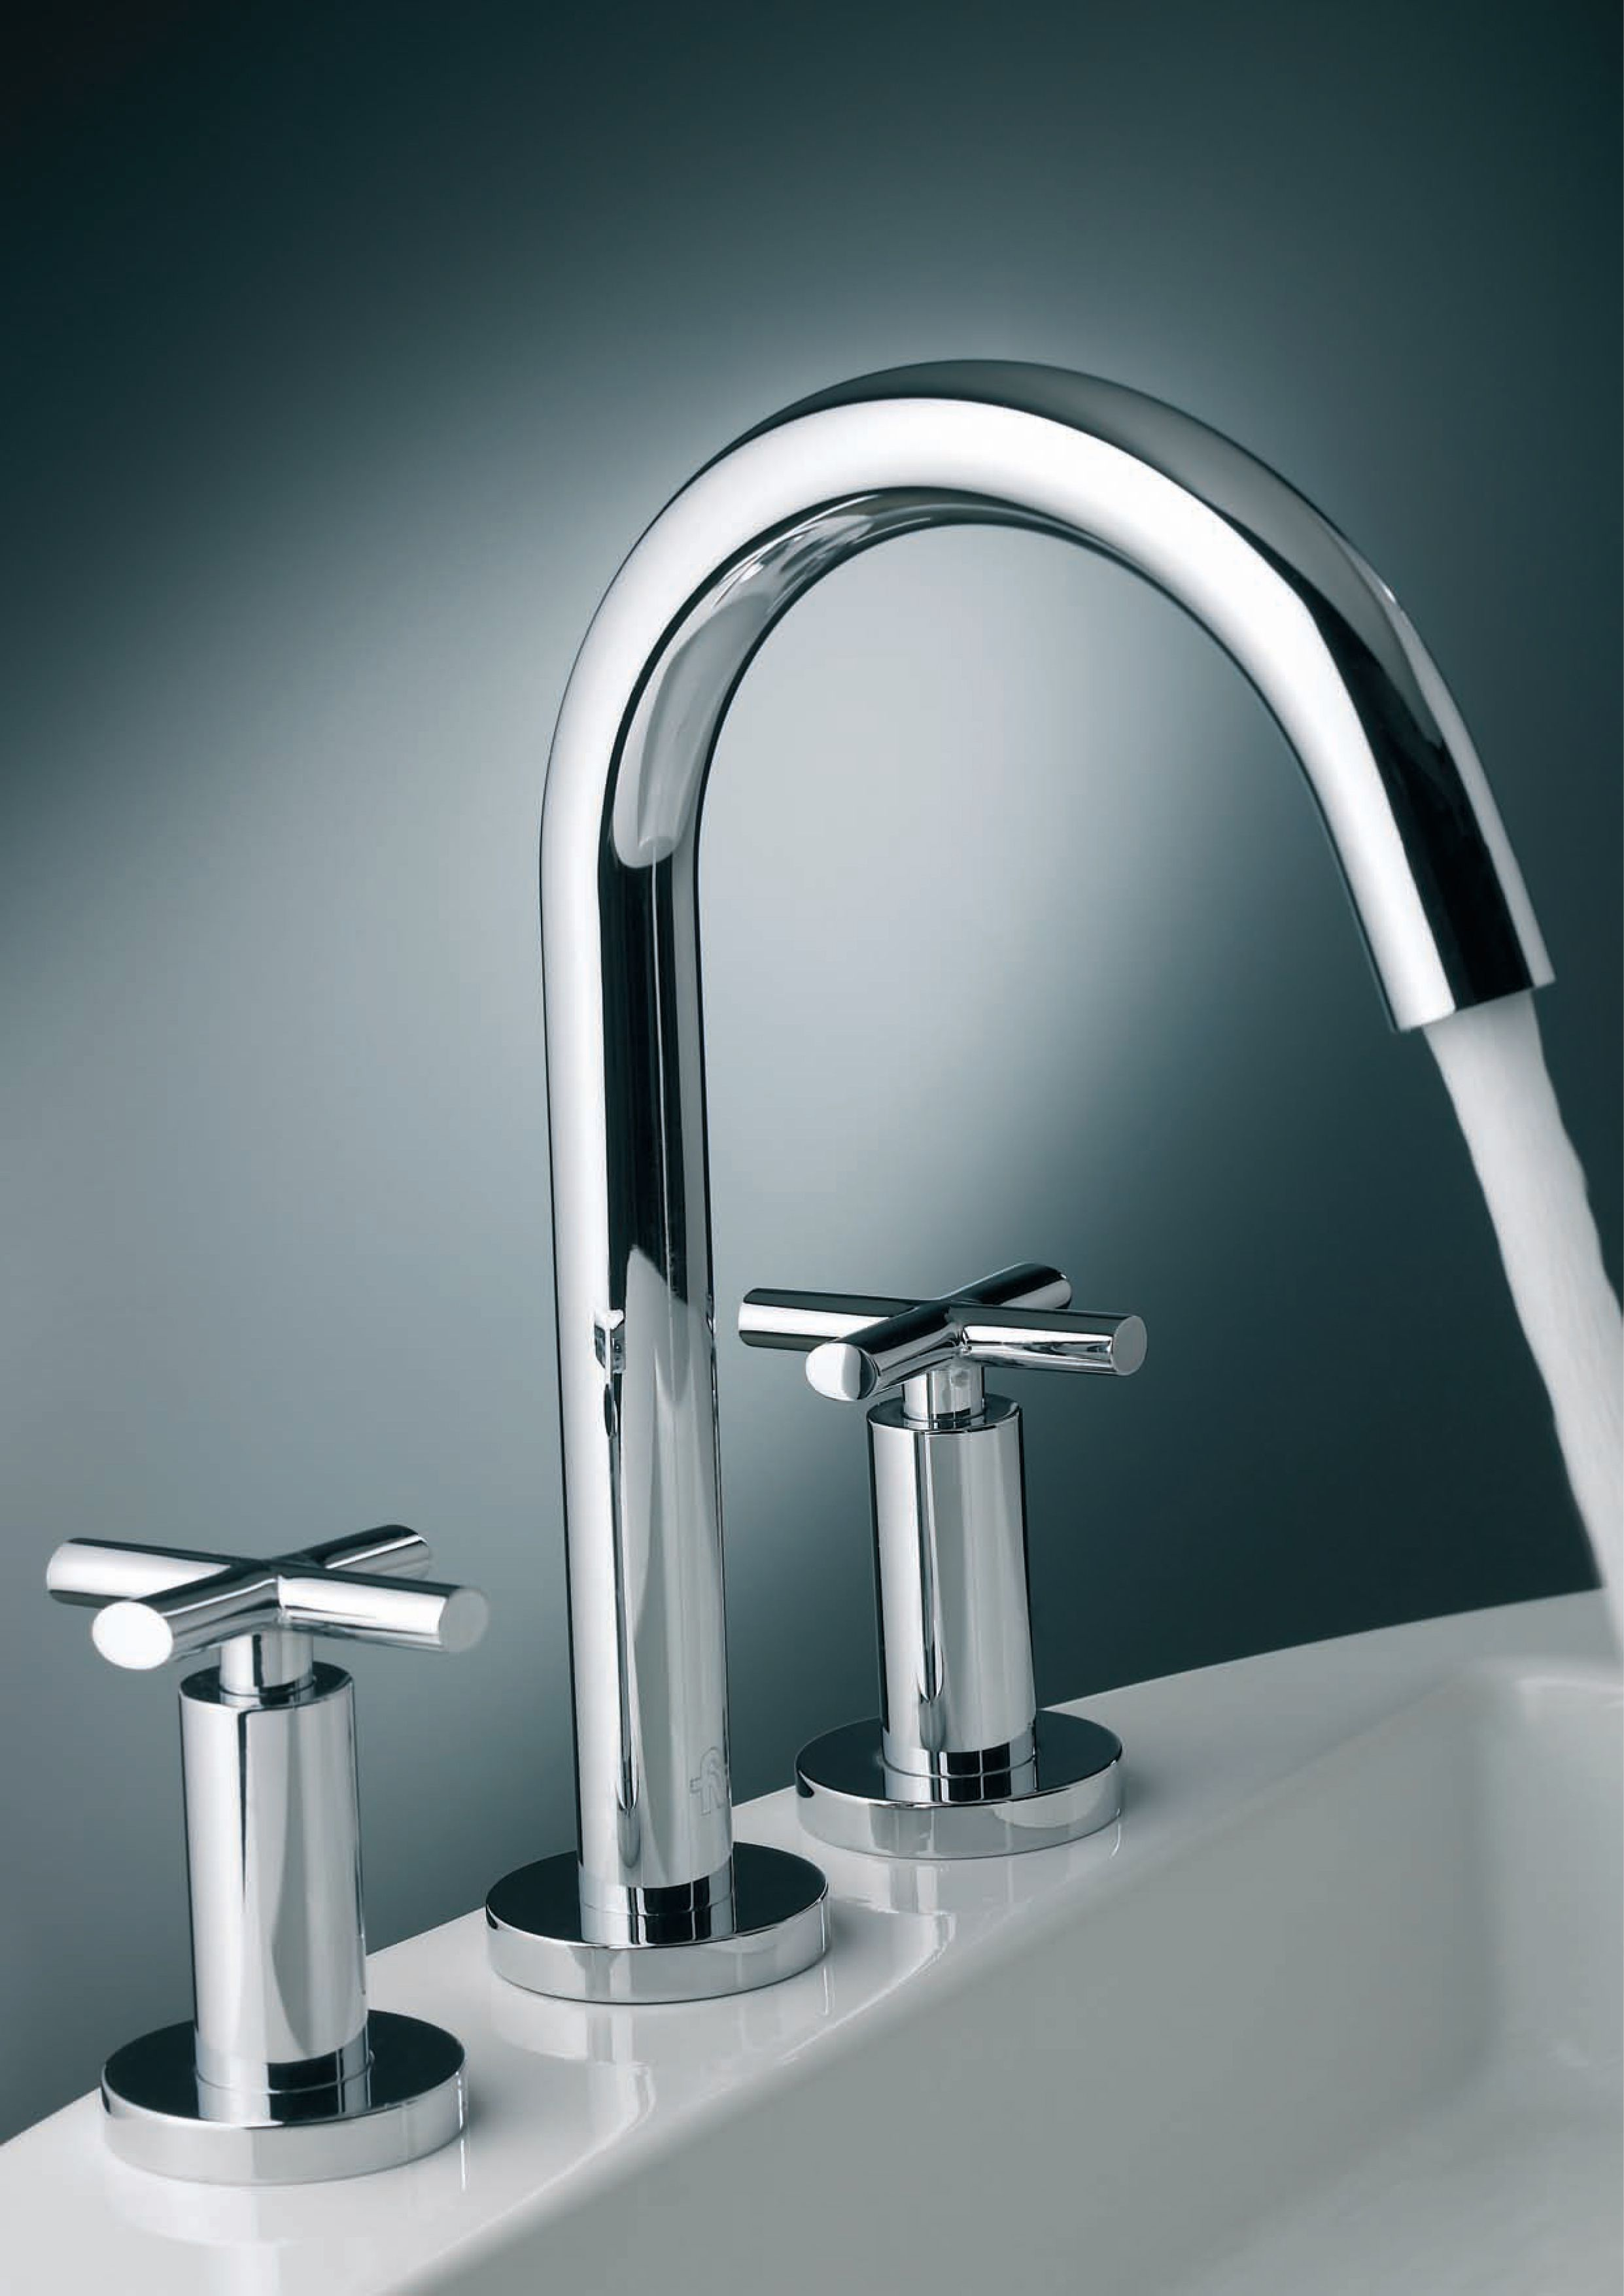 Awesome Ginger Faucets Photos - Faucet Collections - thoughtfire.info